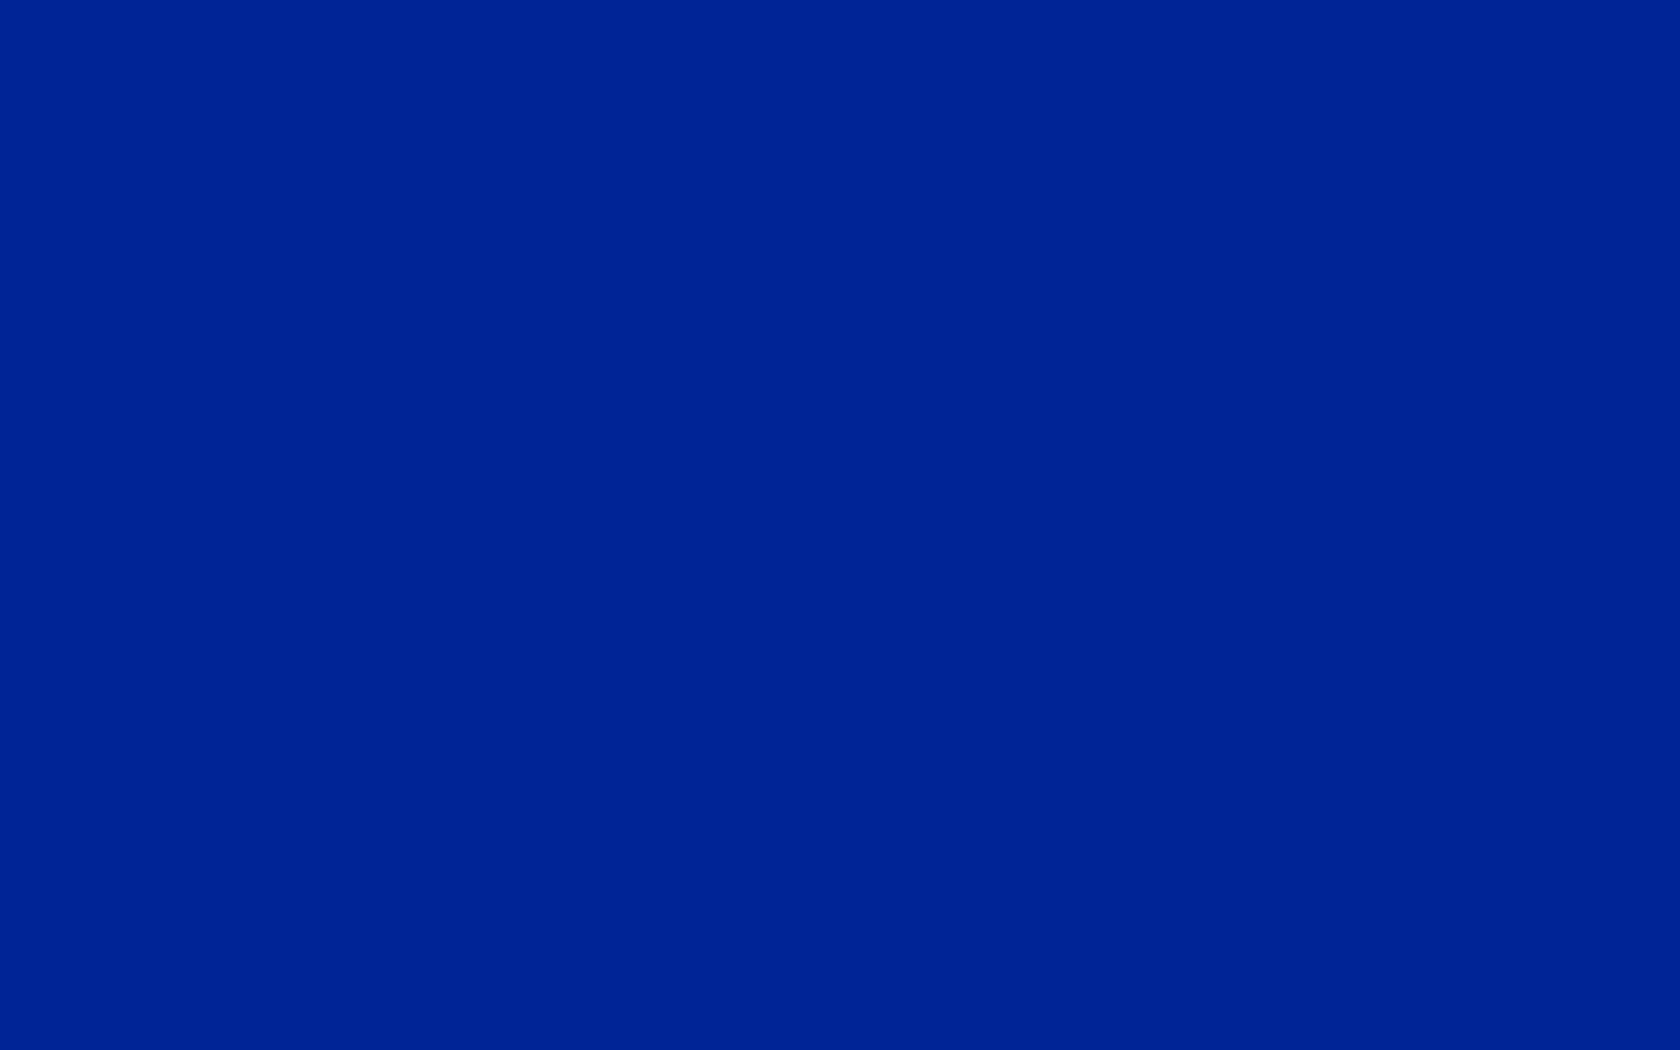 1680x1050 Imperial Blue Solid Color Background